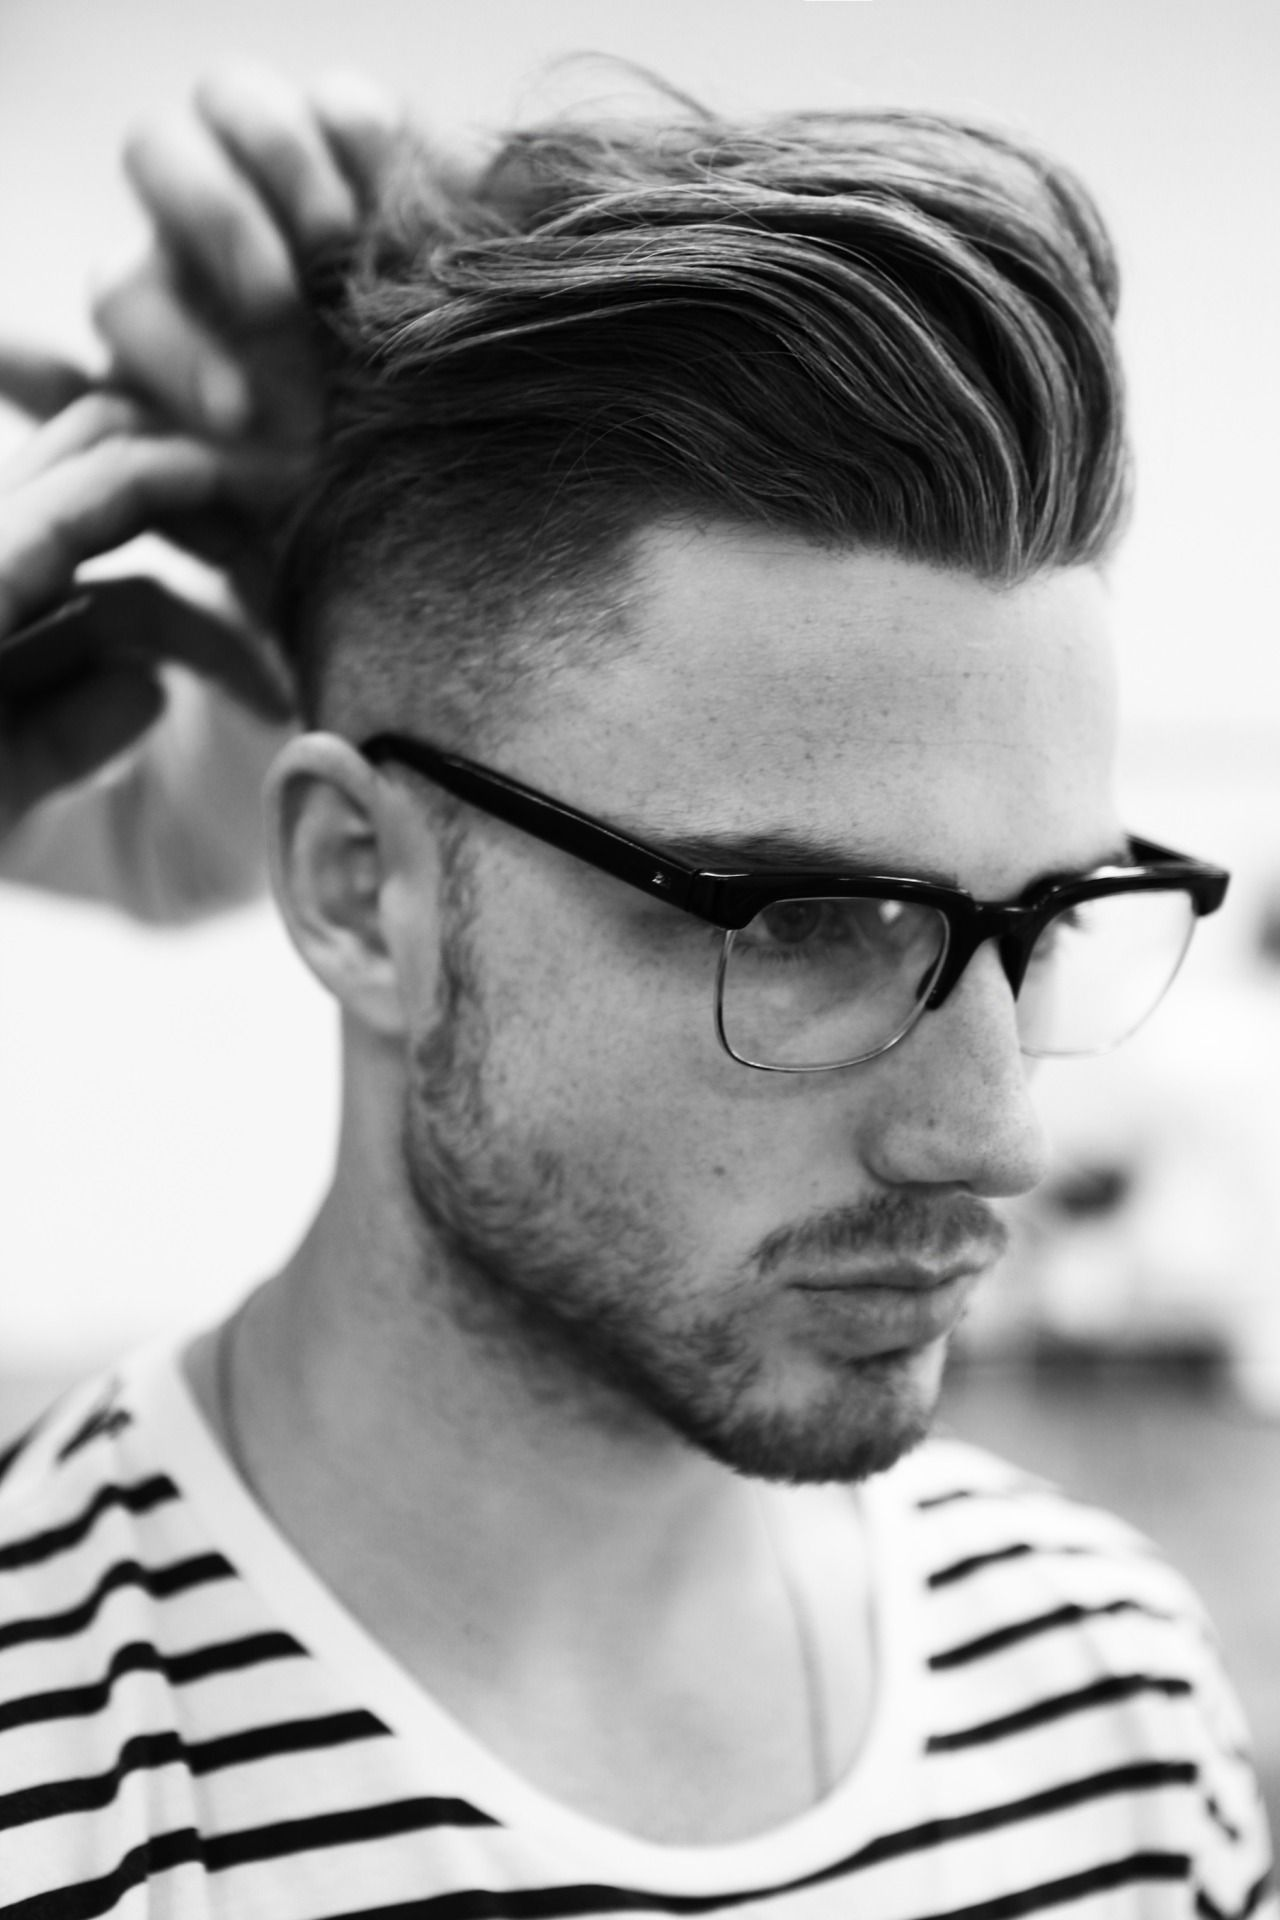 The Hair And The Glasses Yes Men Haircuts And Trends Undercut